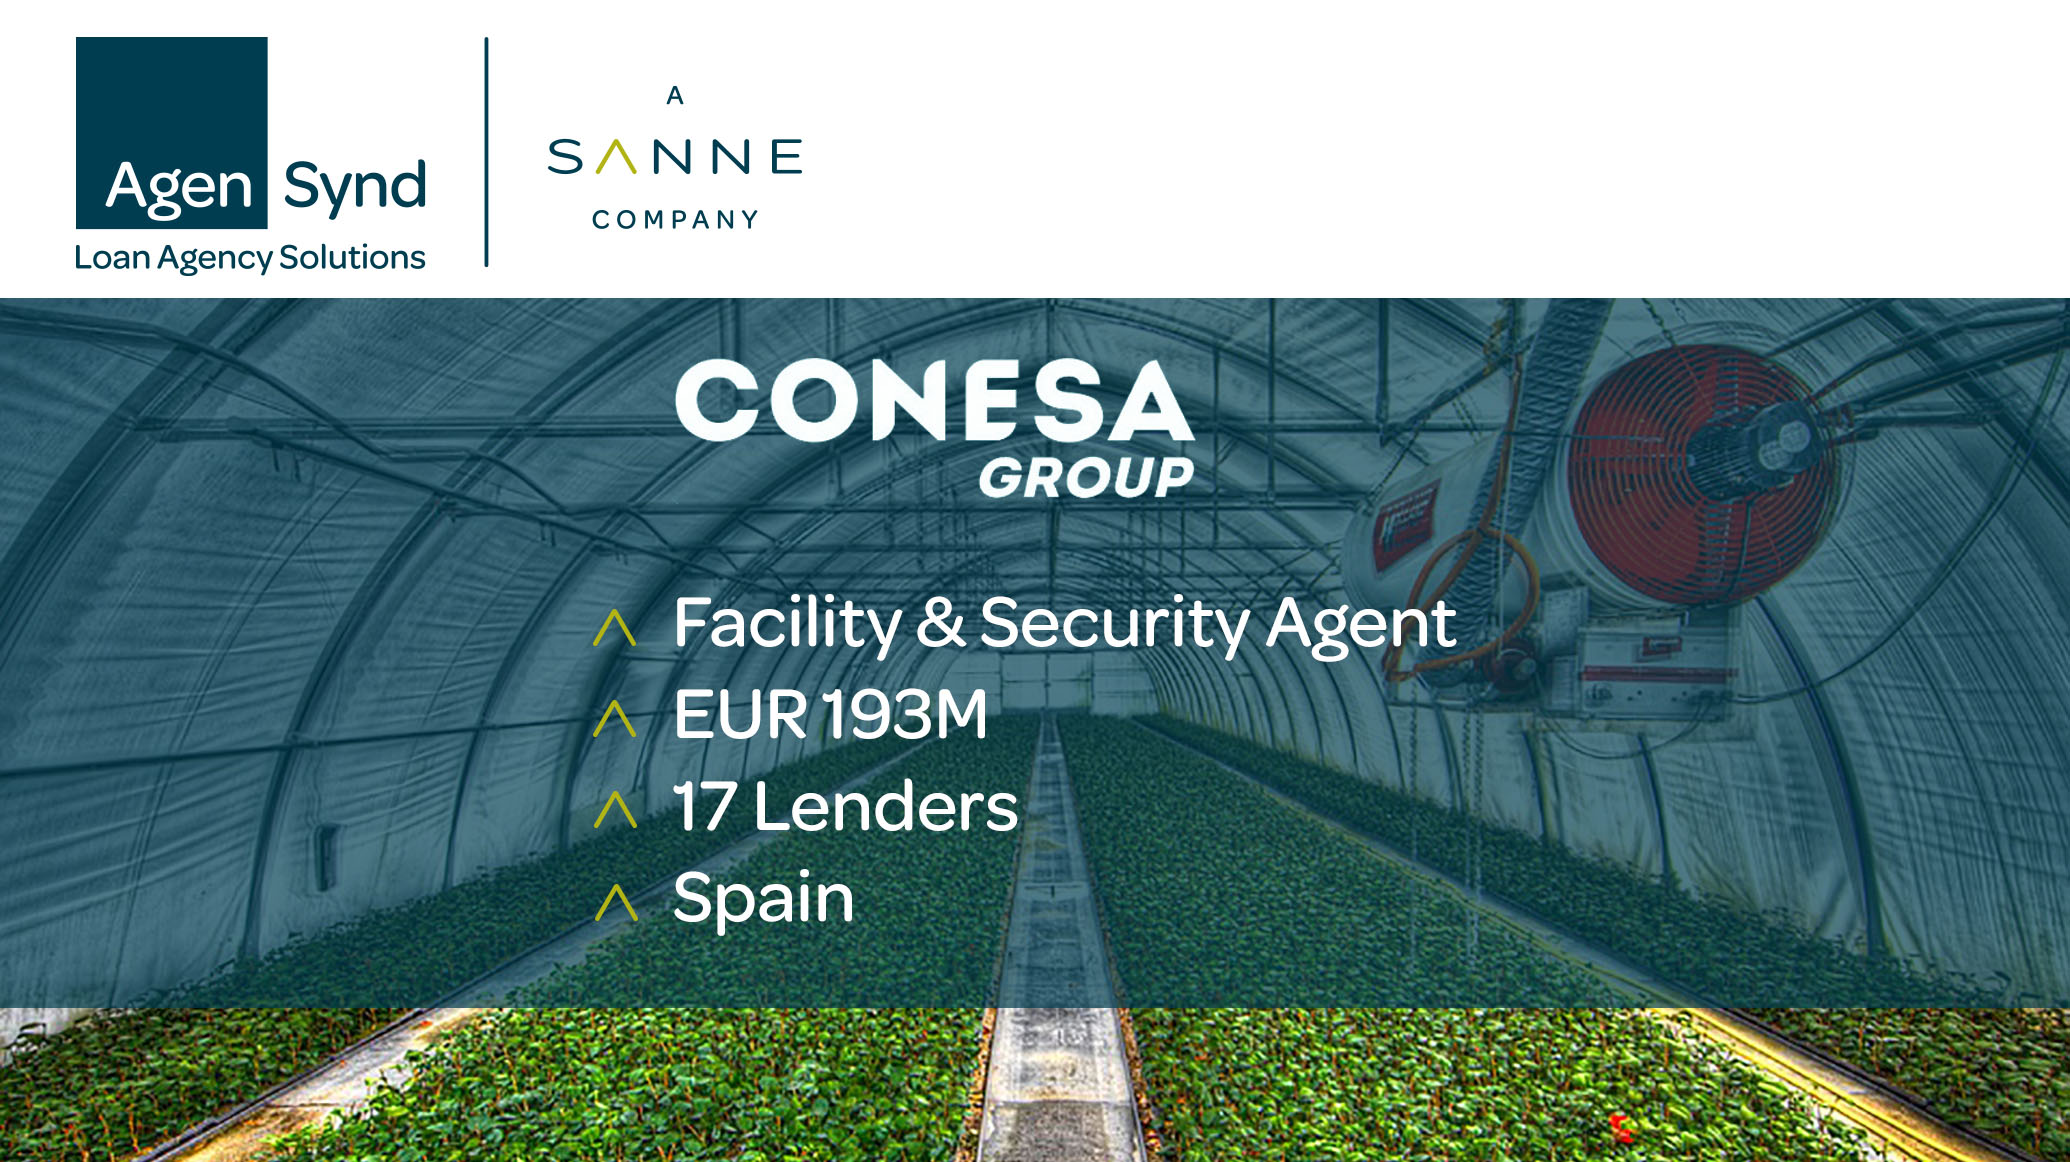 AgenSynd Conesa Group